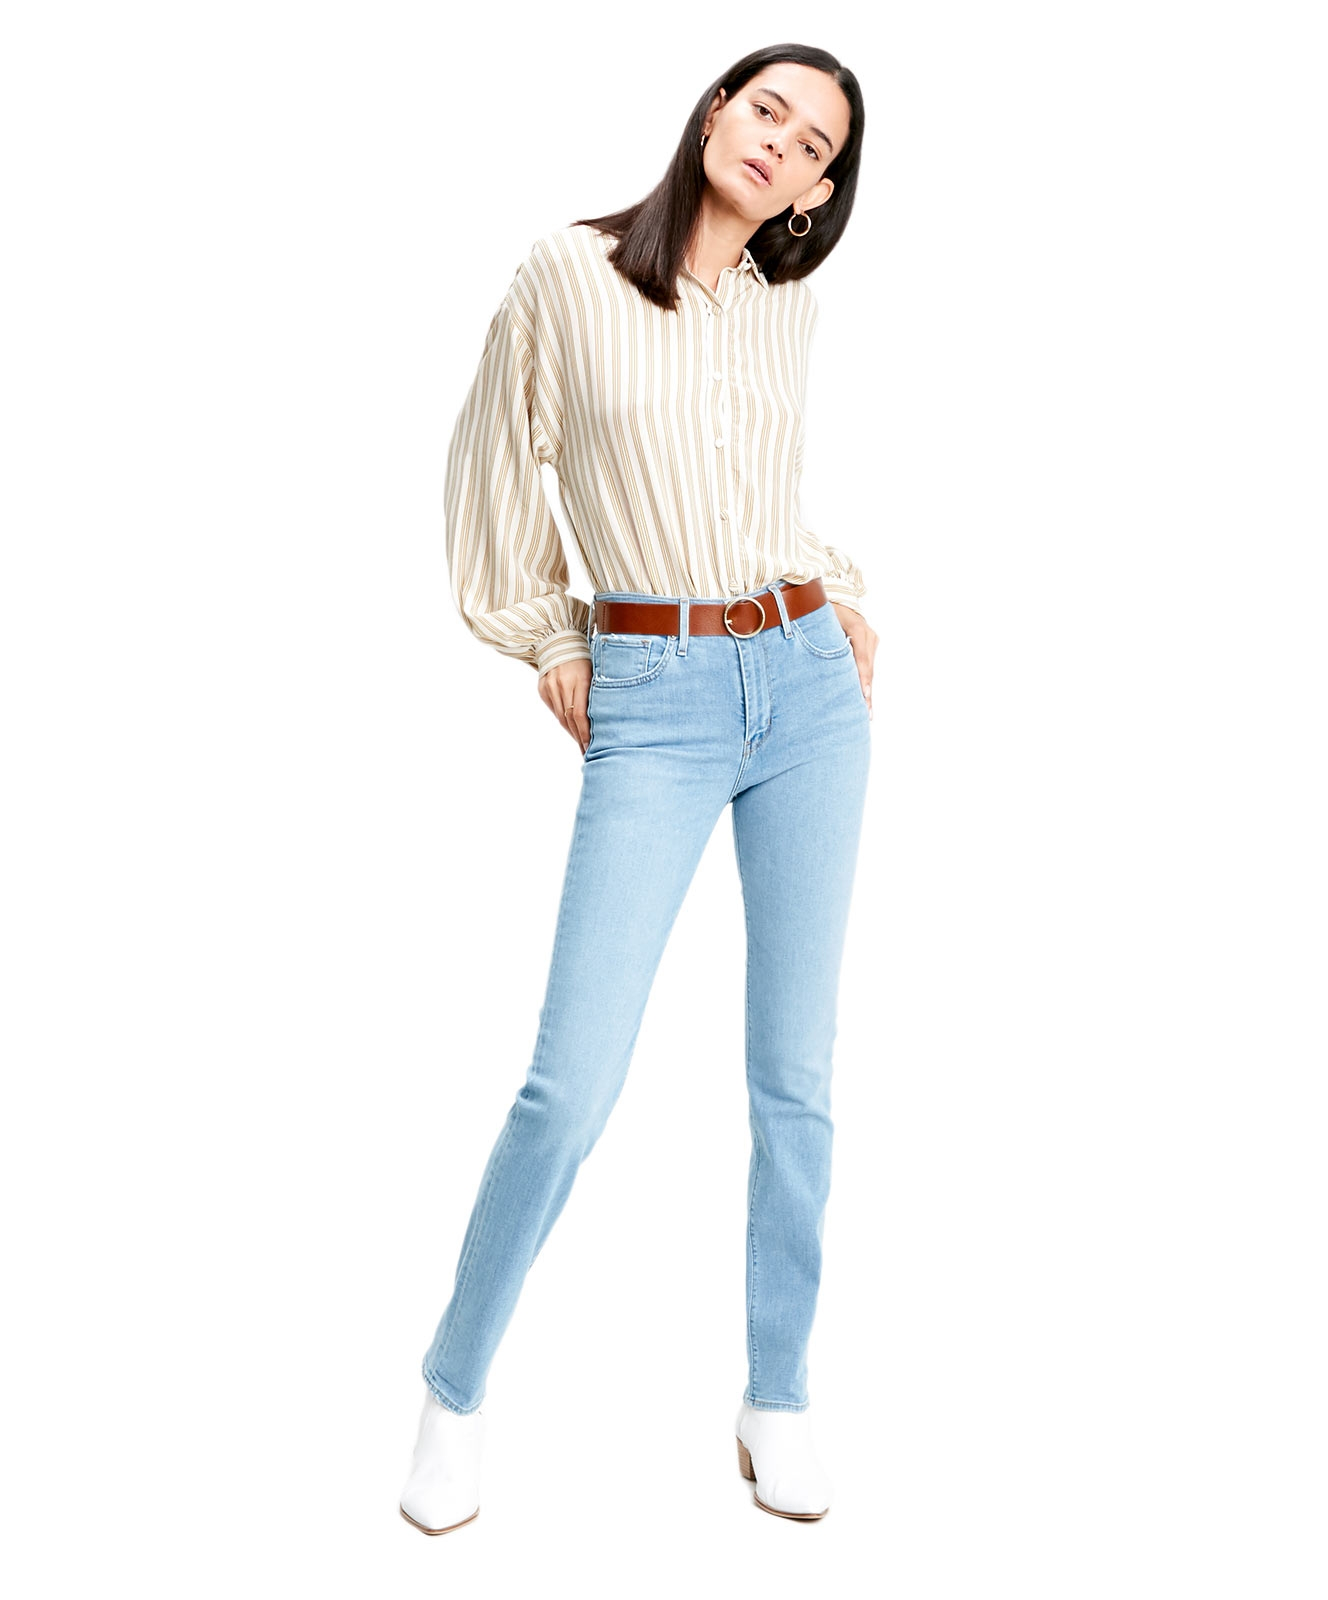 Hosen - Levis Mom Jeans 724 High Rise Straight in Los Angeles Steeze  - Onlineshop Jeans Meile